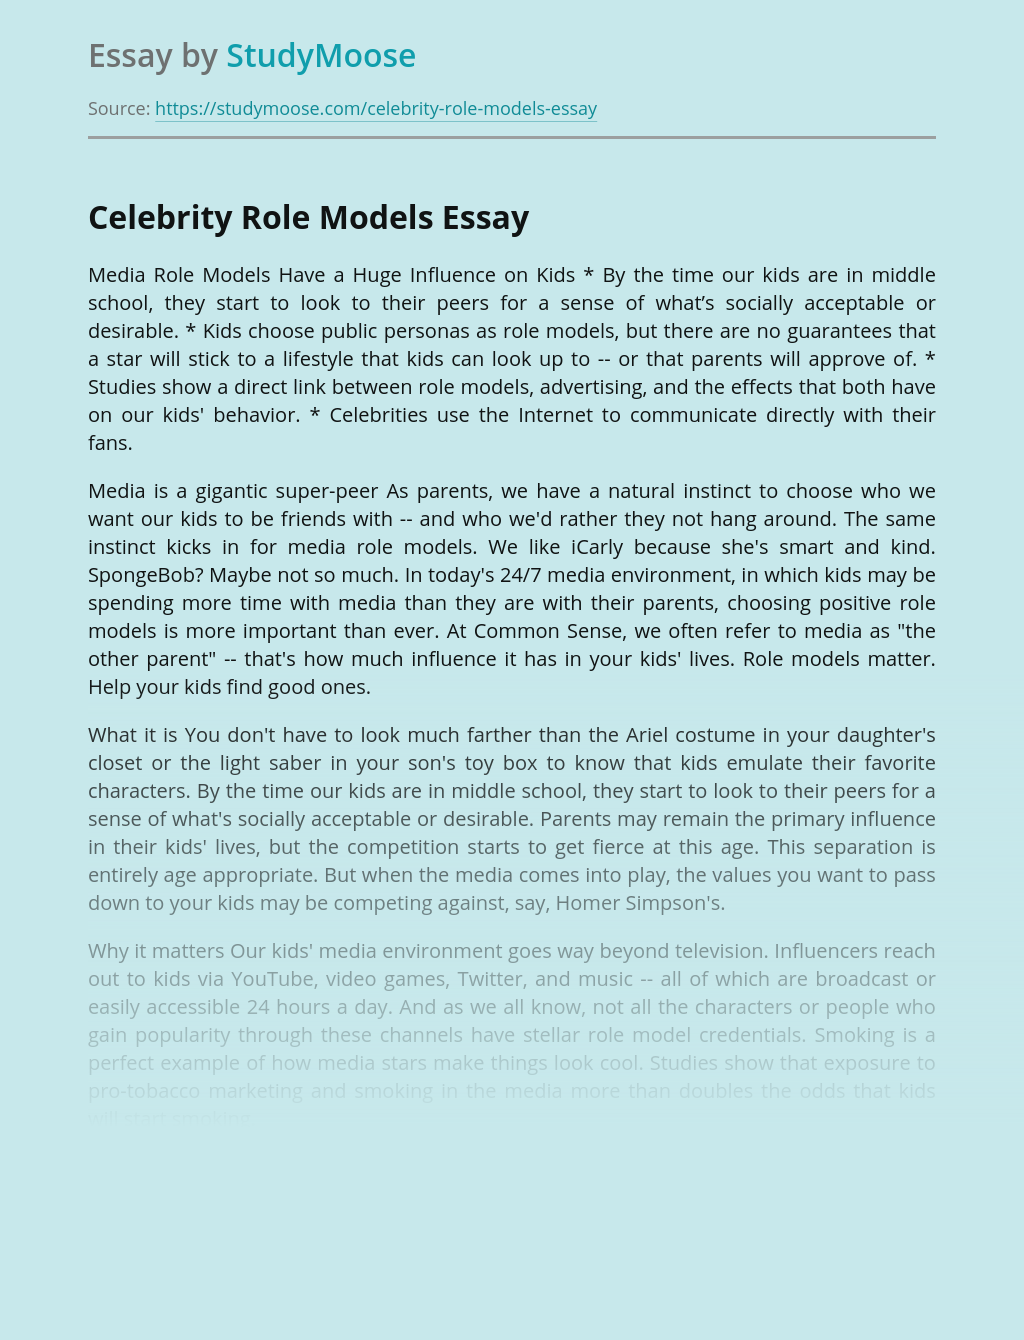 What is a role model essay